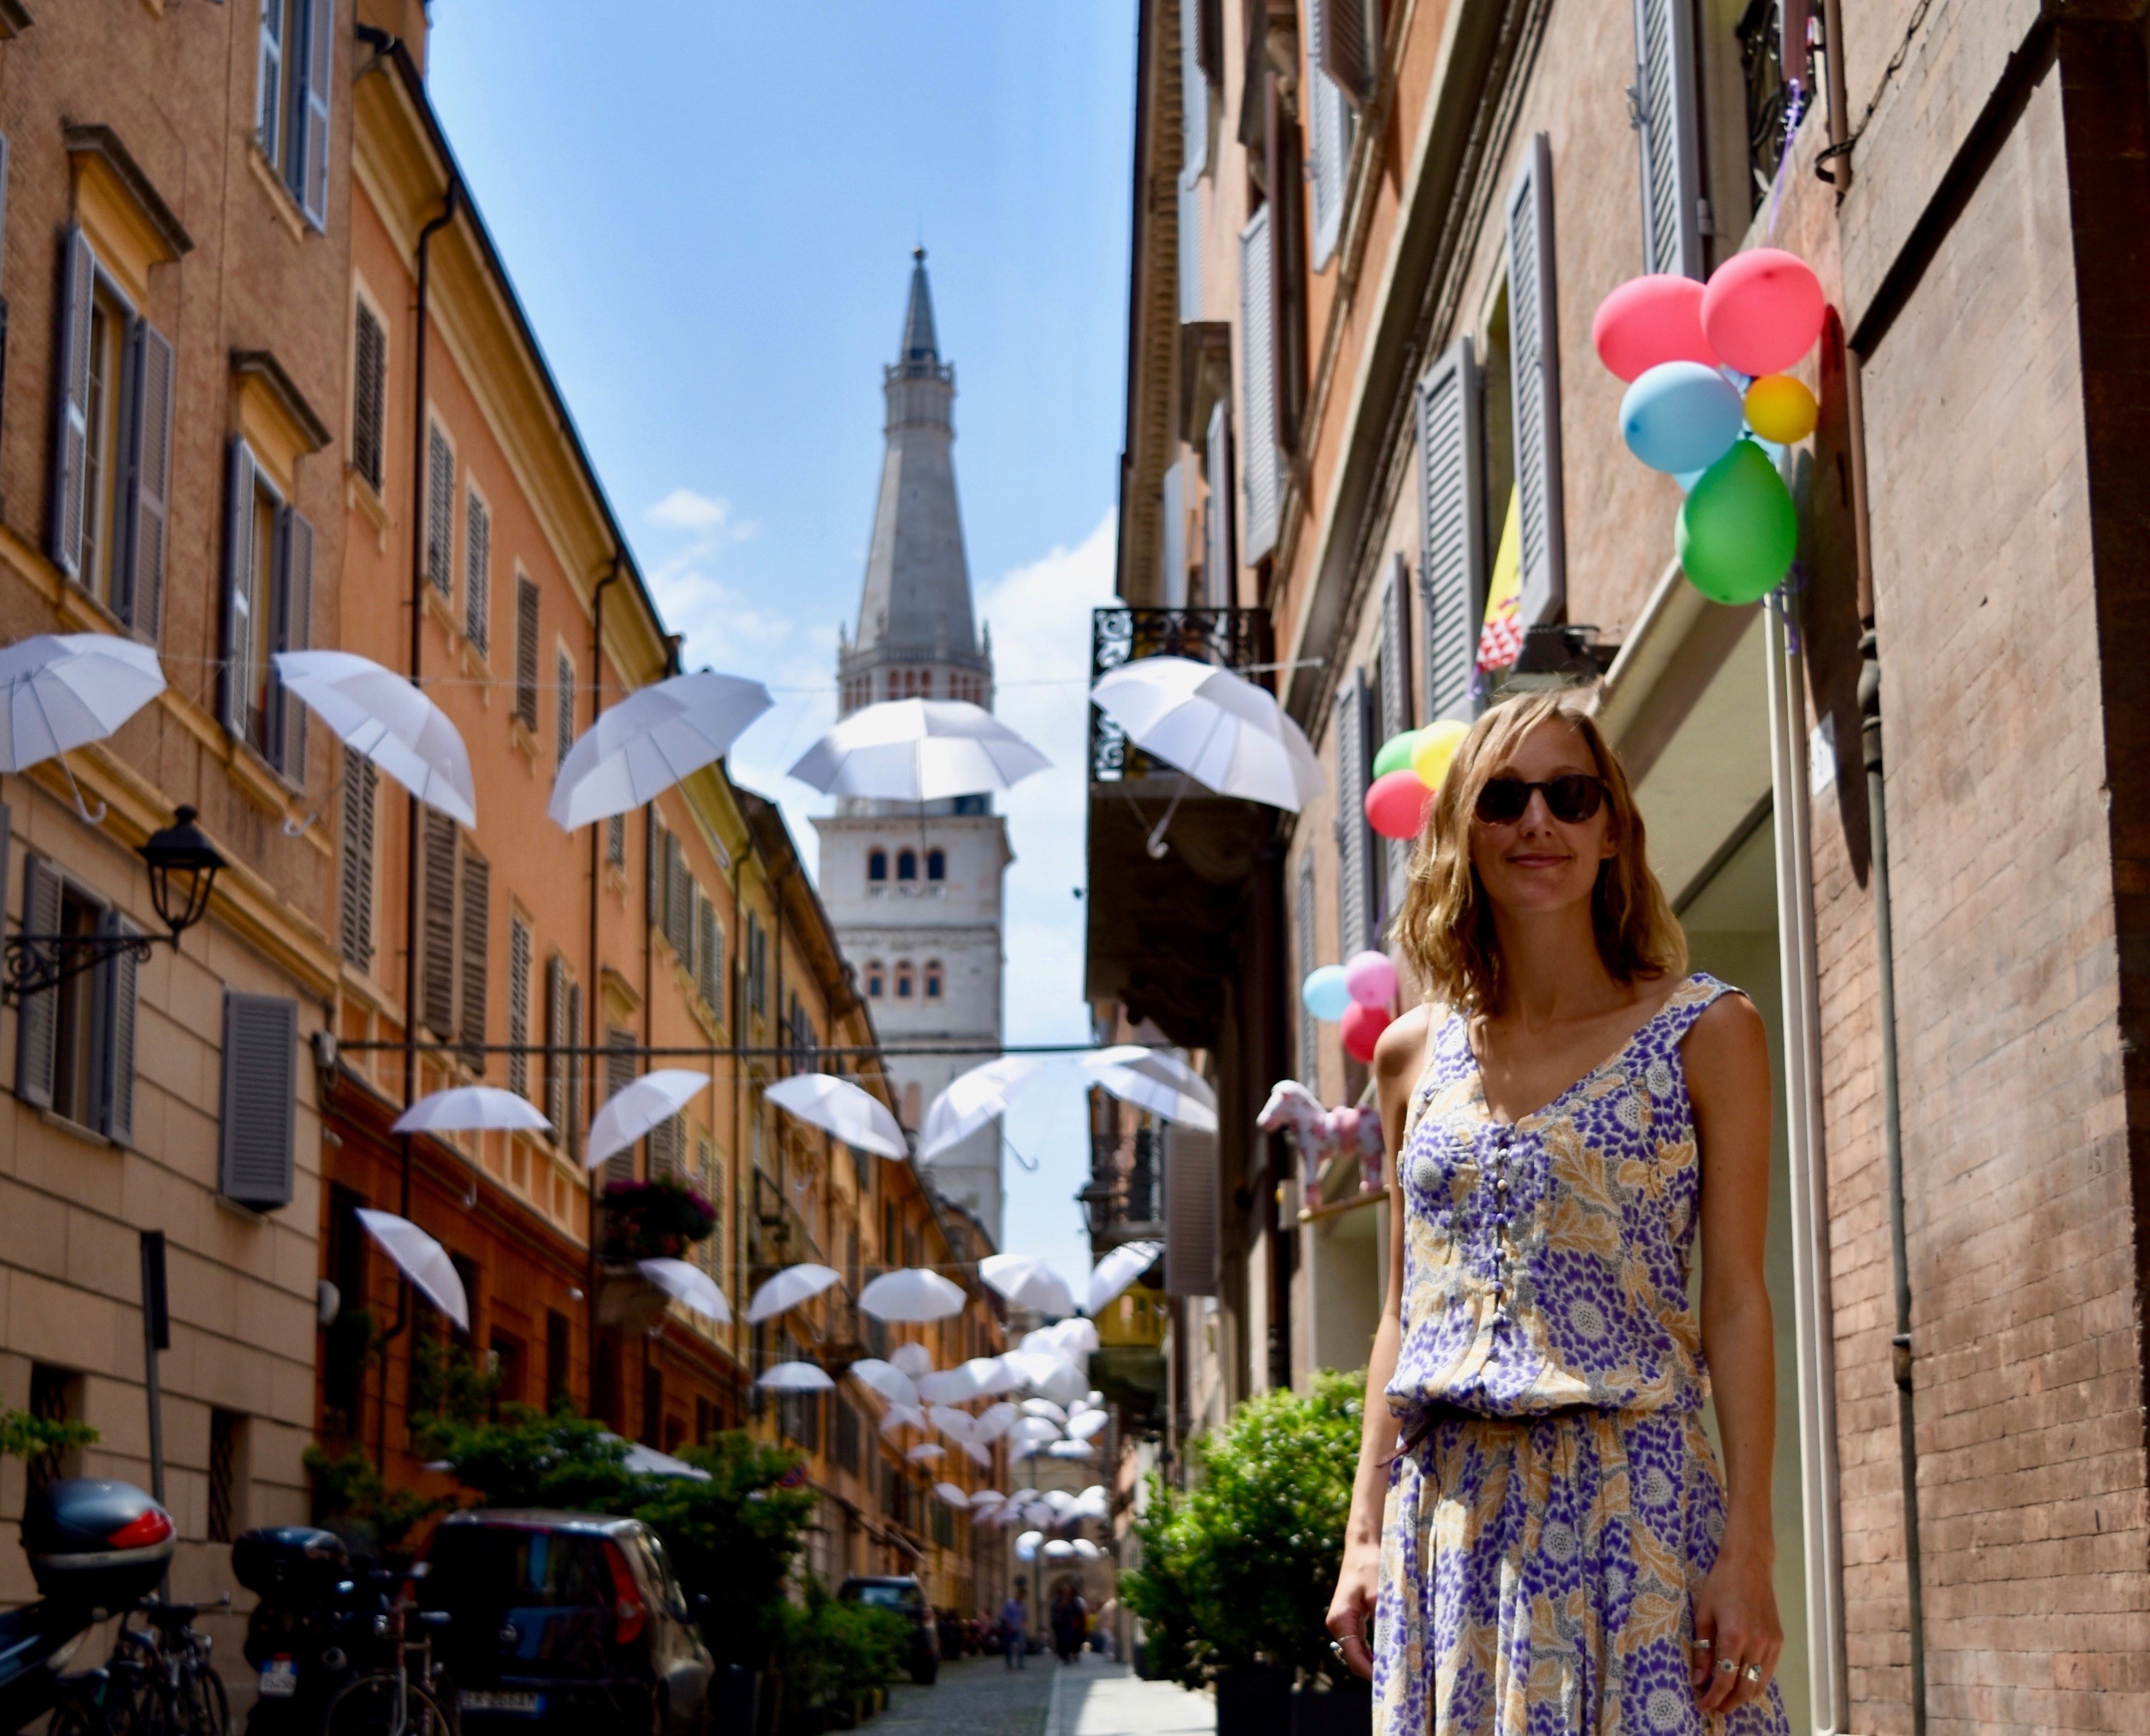 Pathfinder pics: a culinary journey through Emilia Romagna